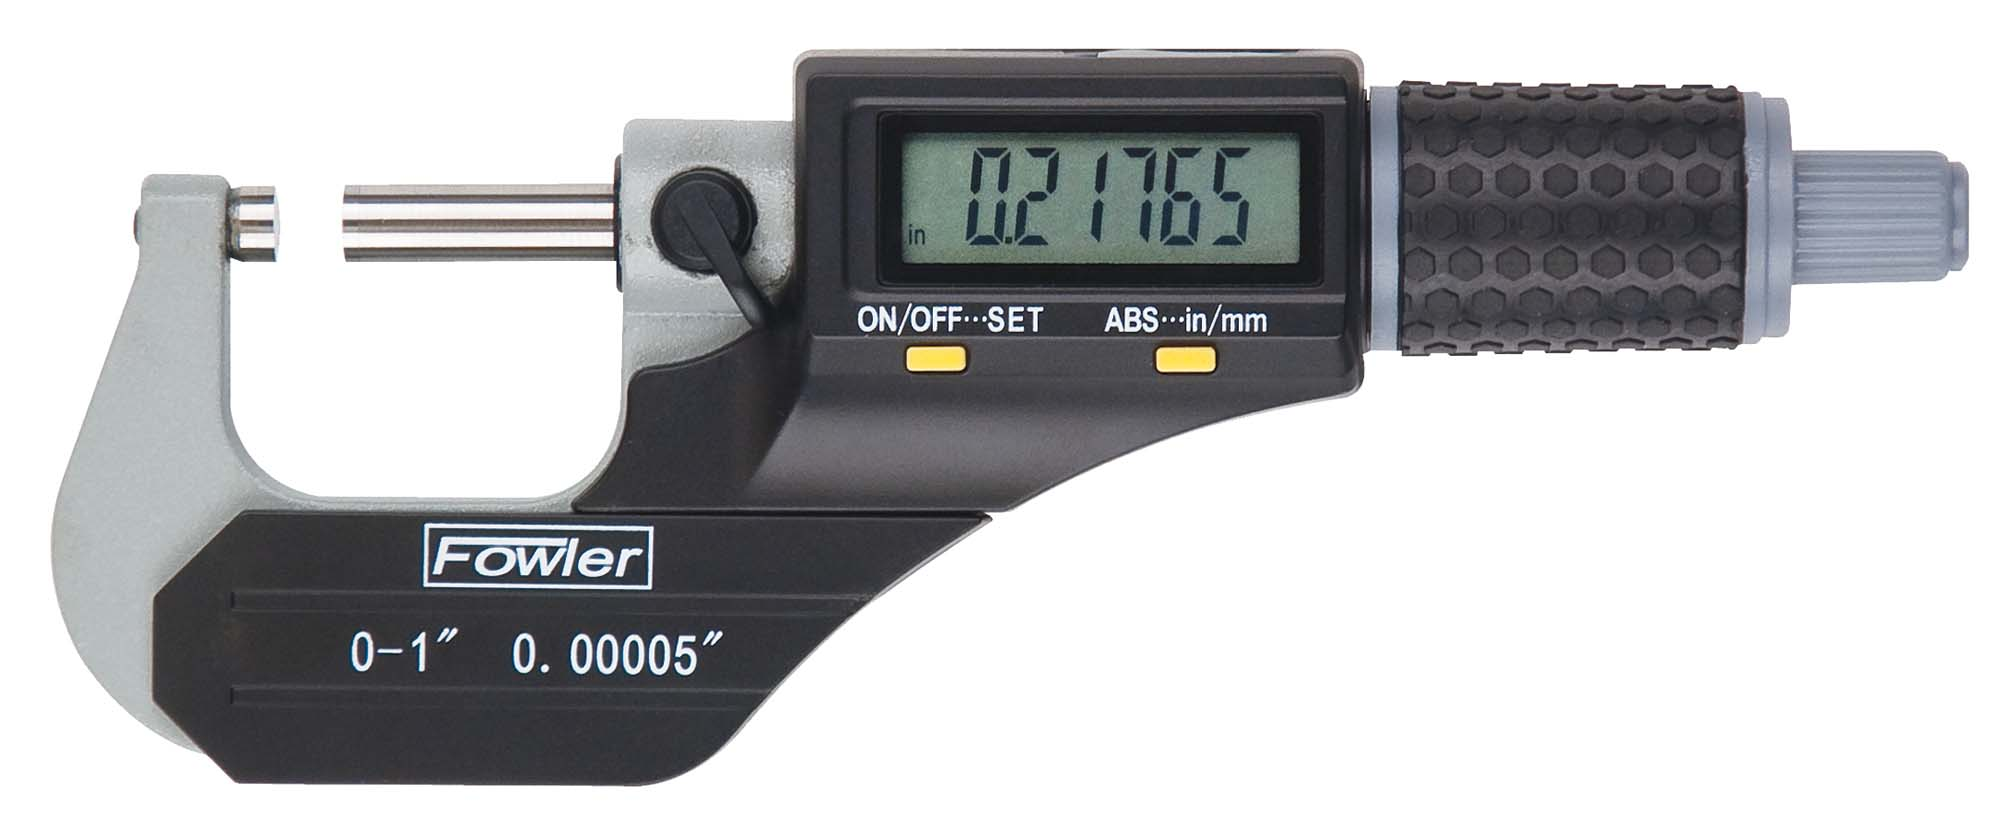 "Fowler 54-870-002 Xtra-Value II 1-2"" Electronic Micrometer"